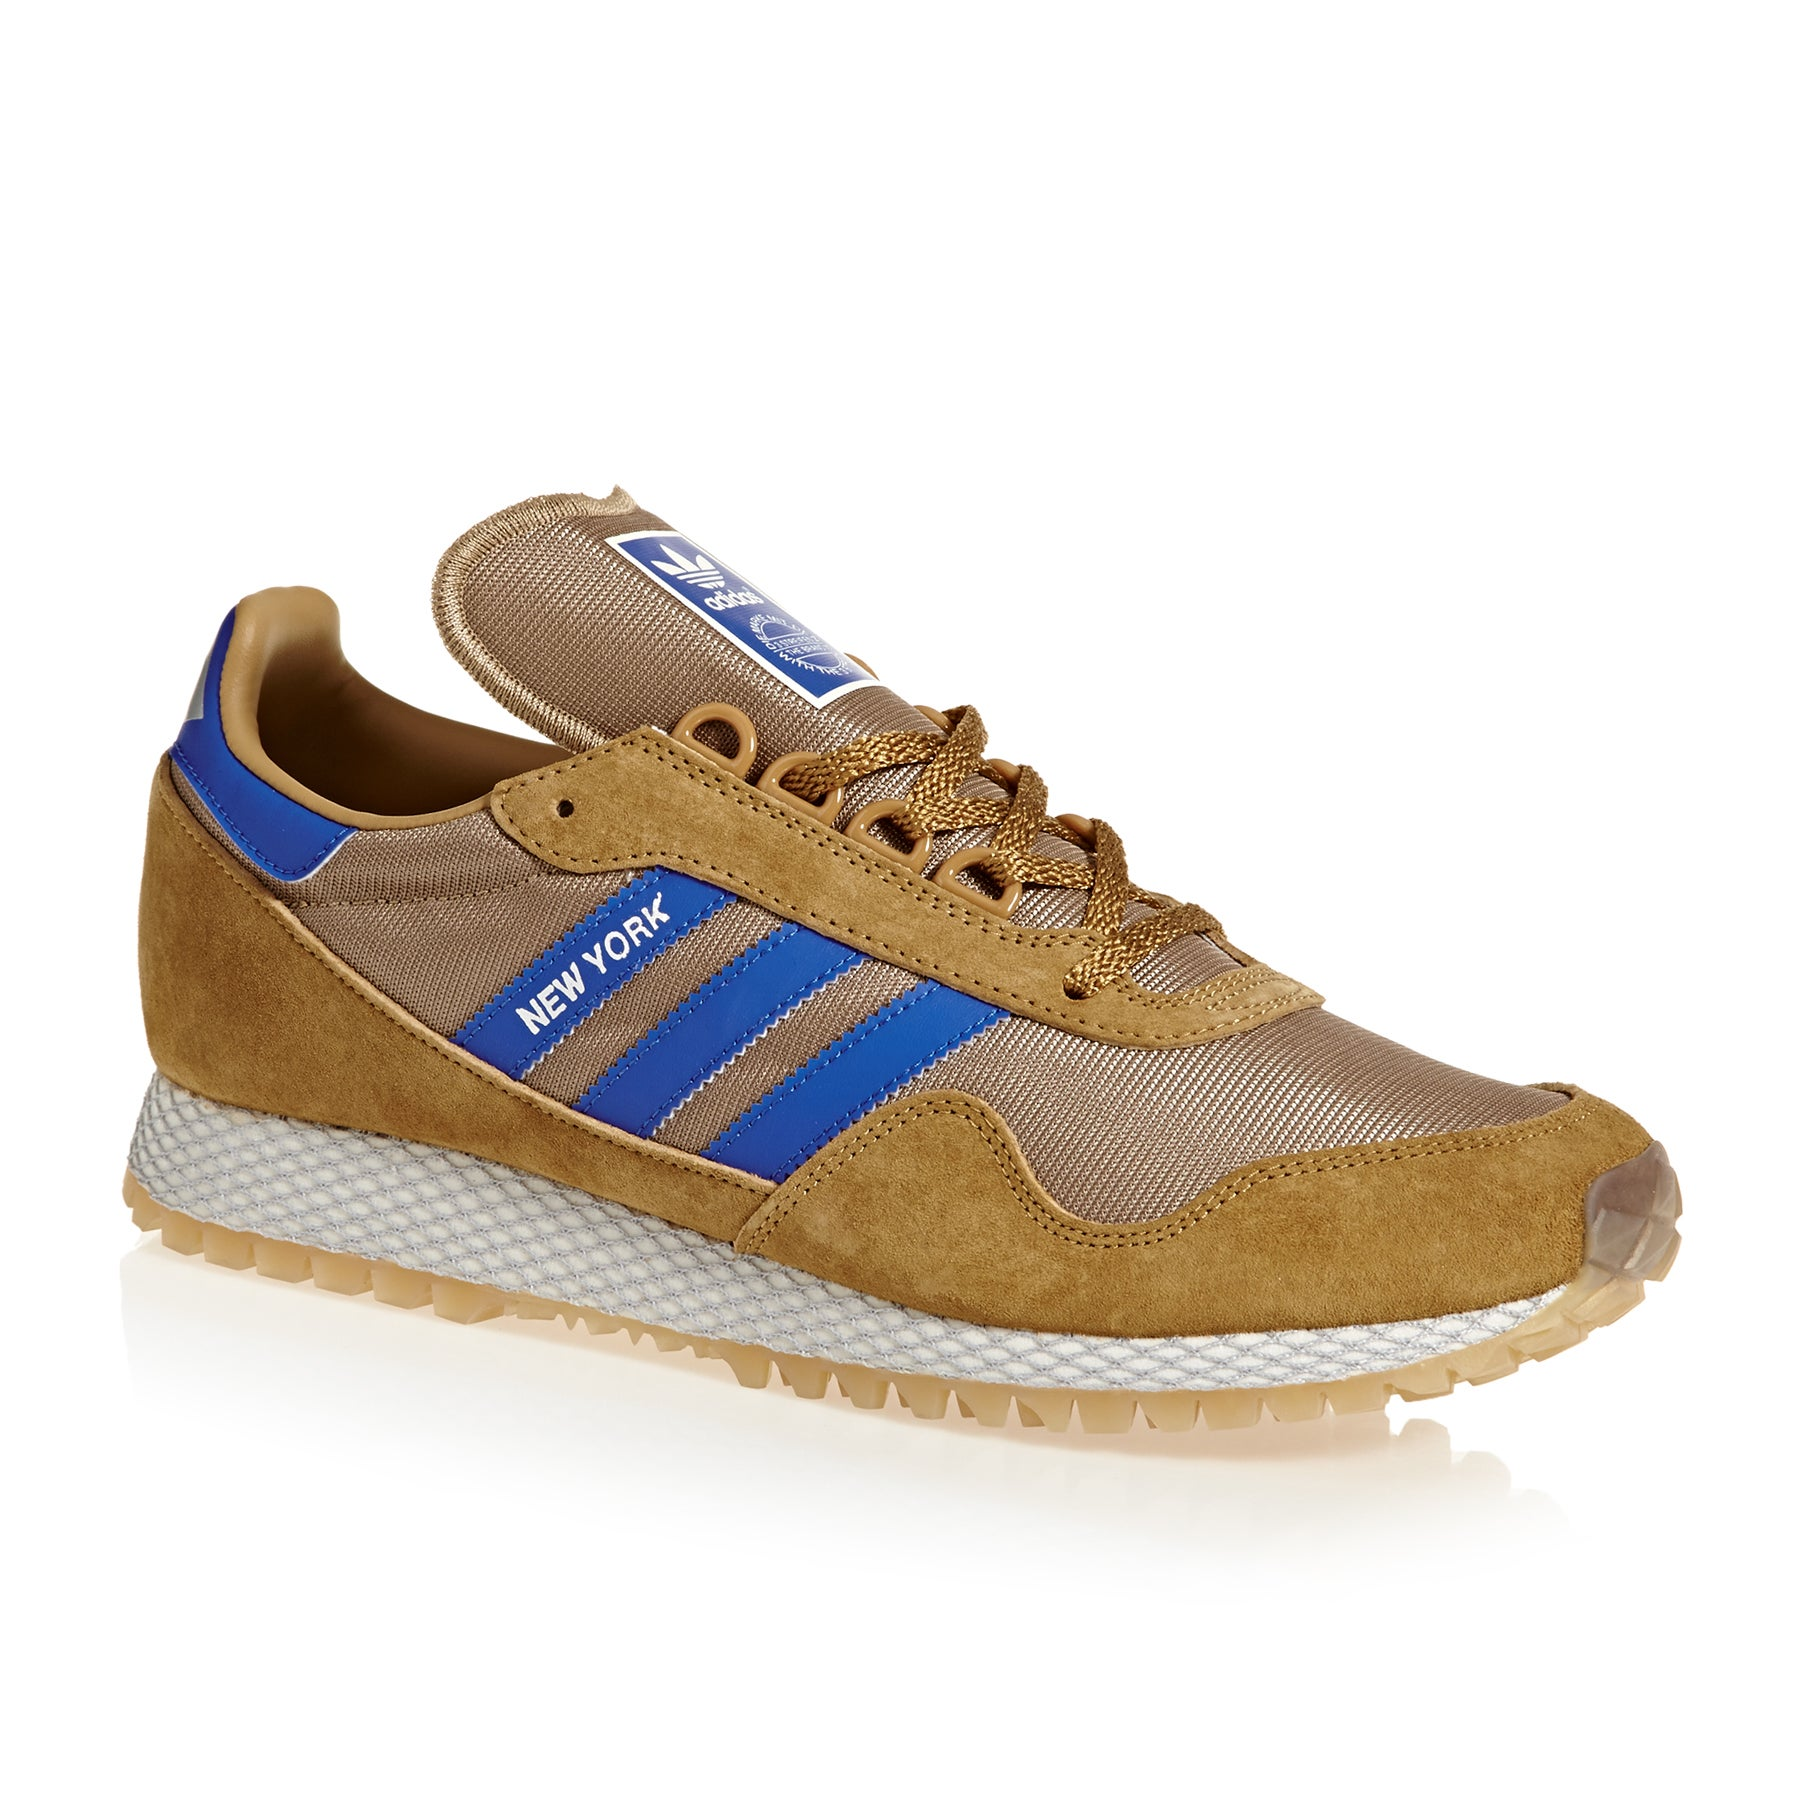 Adidas Originals New York Shoes - Mesa/cardboard/gum 2